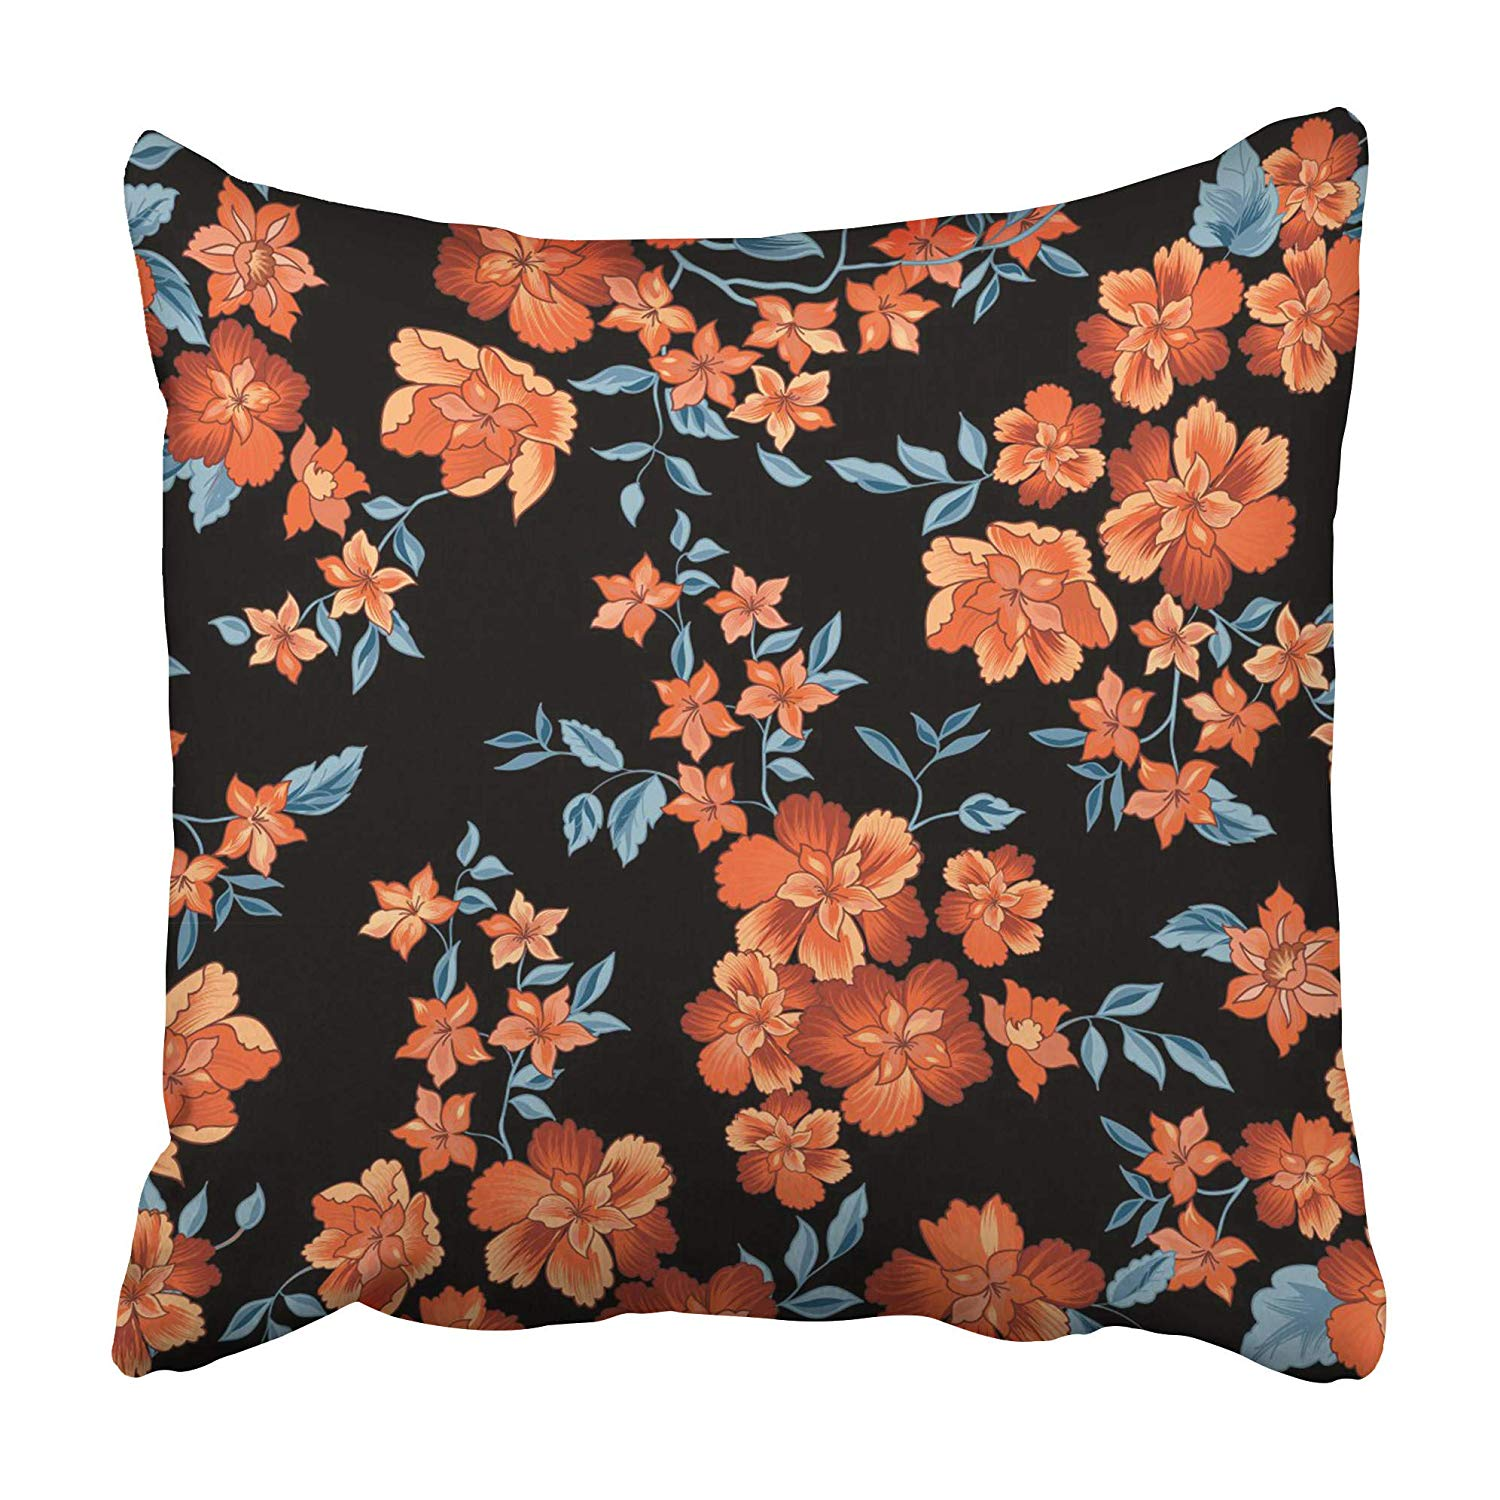 USART Ditsy Floral Flower Flourish Ornamental Summer with Abstract Black Bloom Blossom Pillowcase 20x20 inch